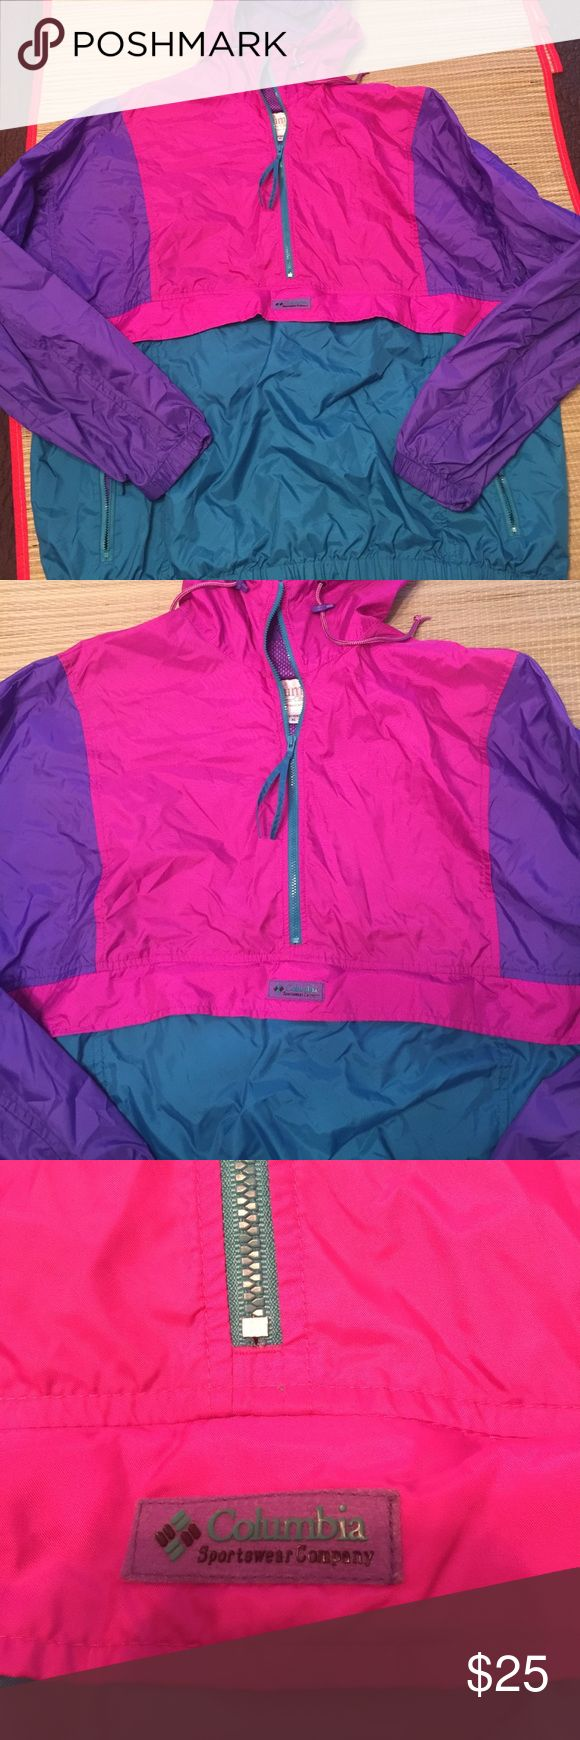 90s Columbia windbreaker rain coat color block XL Vintage 90s colorblock windbreaker anorak jacket. Excellent condition NO signs of wear. Price firm 💕 tag size is XL (I am assuming a women's size given the colors). Front pockets and zippers all in excellent condition. Rare color vintage jacket perfect for fall 2017 💕price firm ships next day 💕 tags: vintage Nike retro hoodie Champion sweatshirt polo Ralph Lauren Columbia Jackets & Coats Jean Jackets